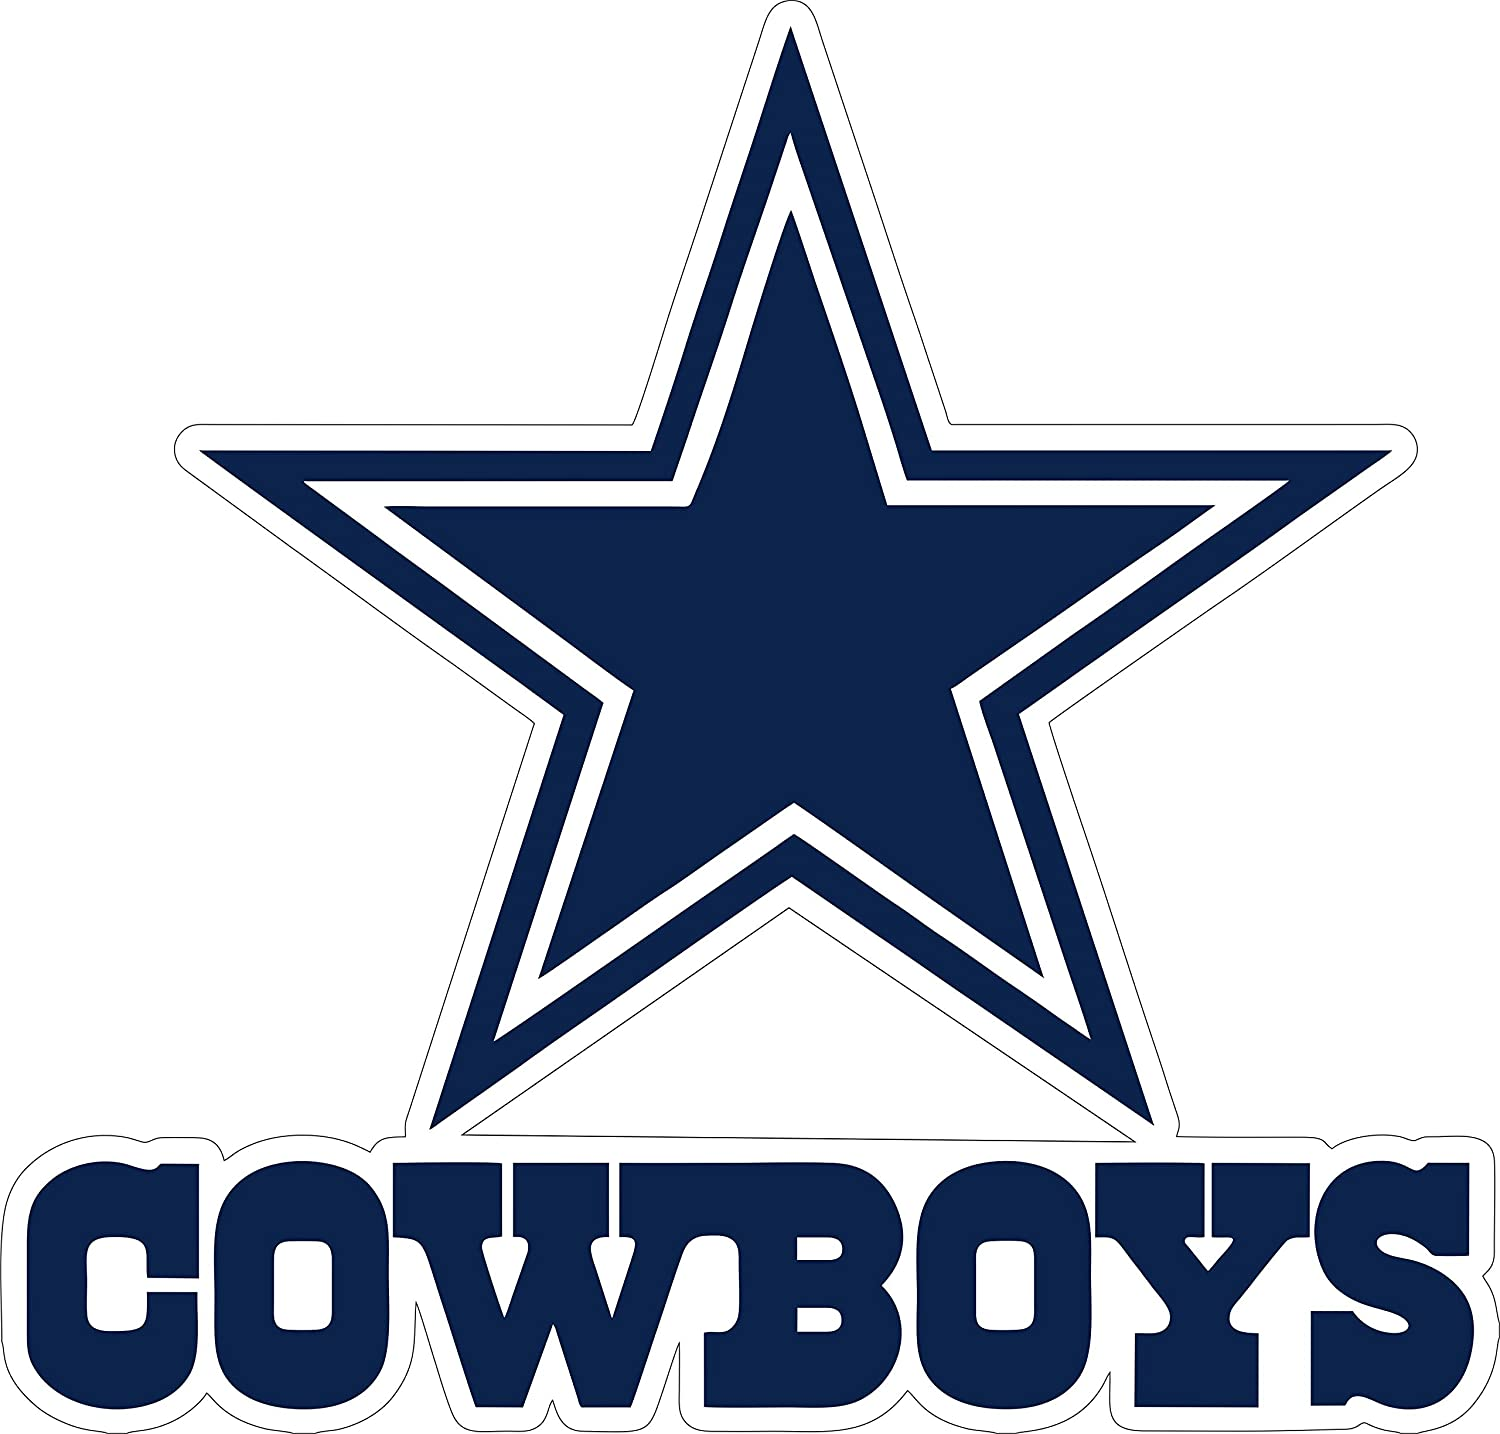 Laptop 12 inch Dallas Cowboy Vinyl Sticker Team Colors Any Size tumblers hemlet Dallas Star Stickers Decal Vinyl for car bamper